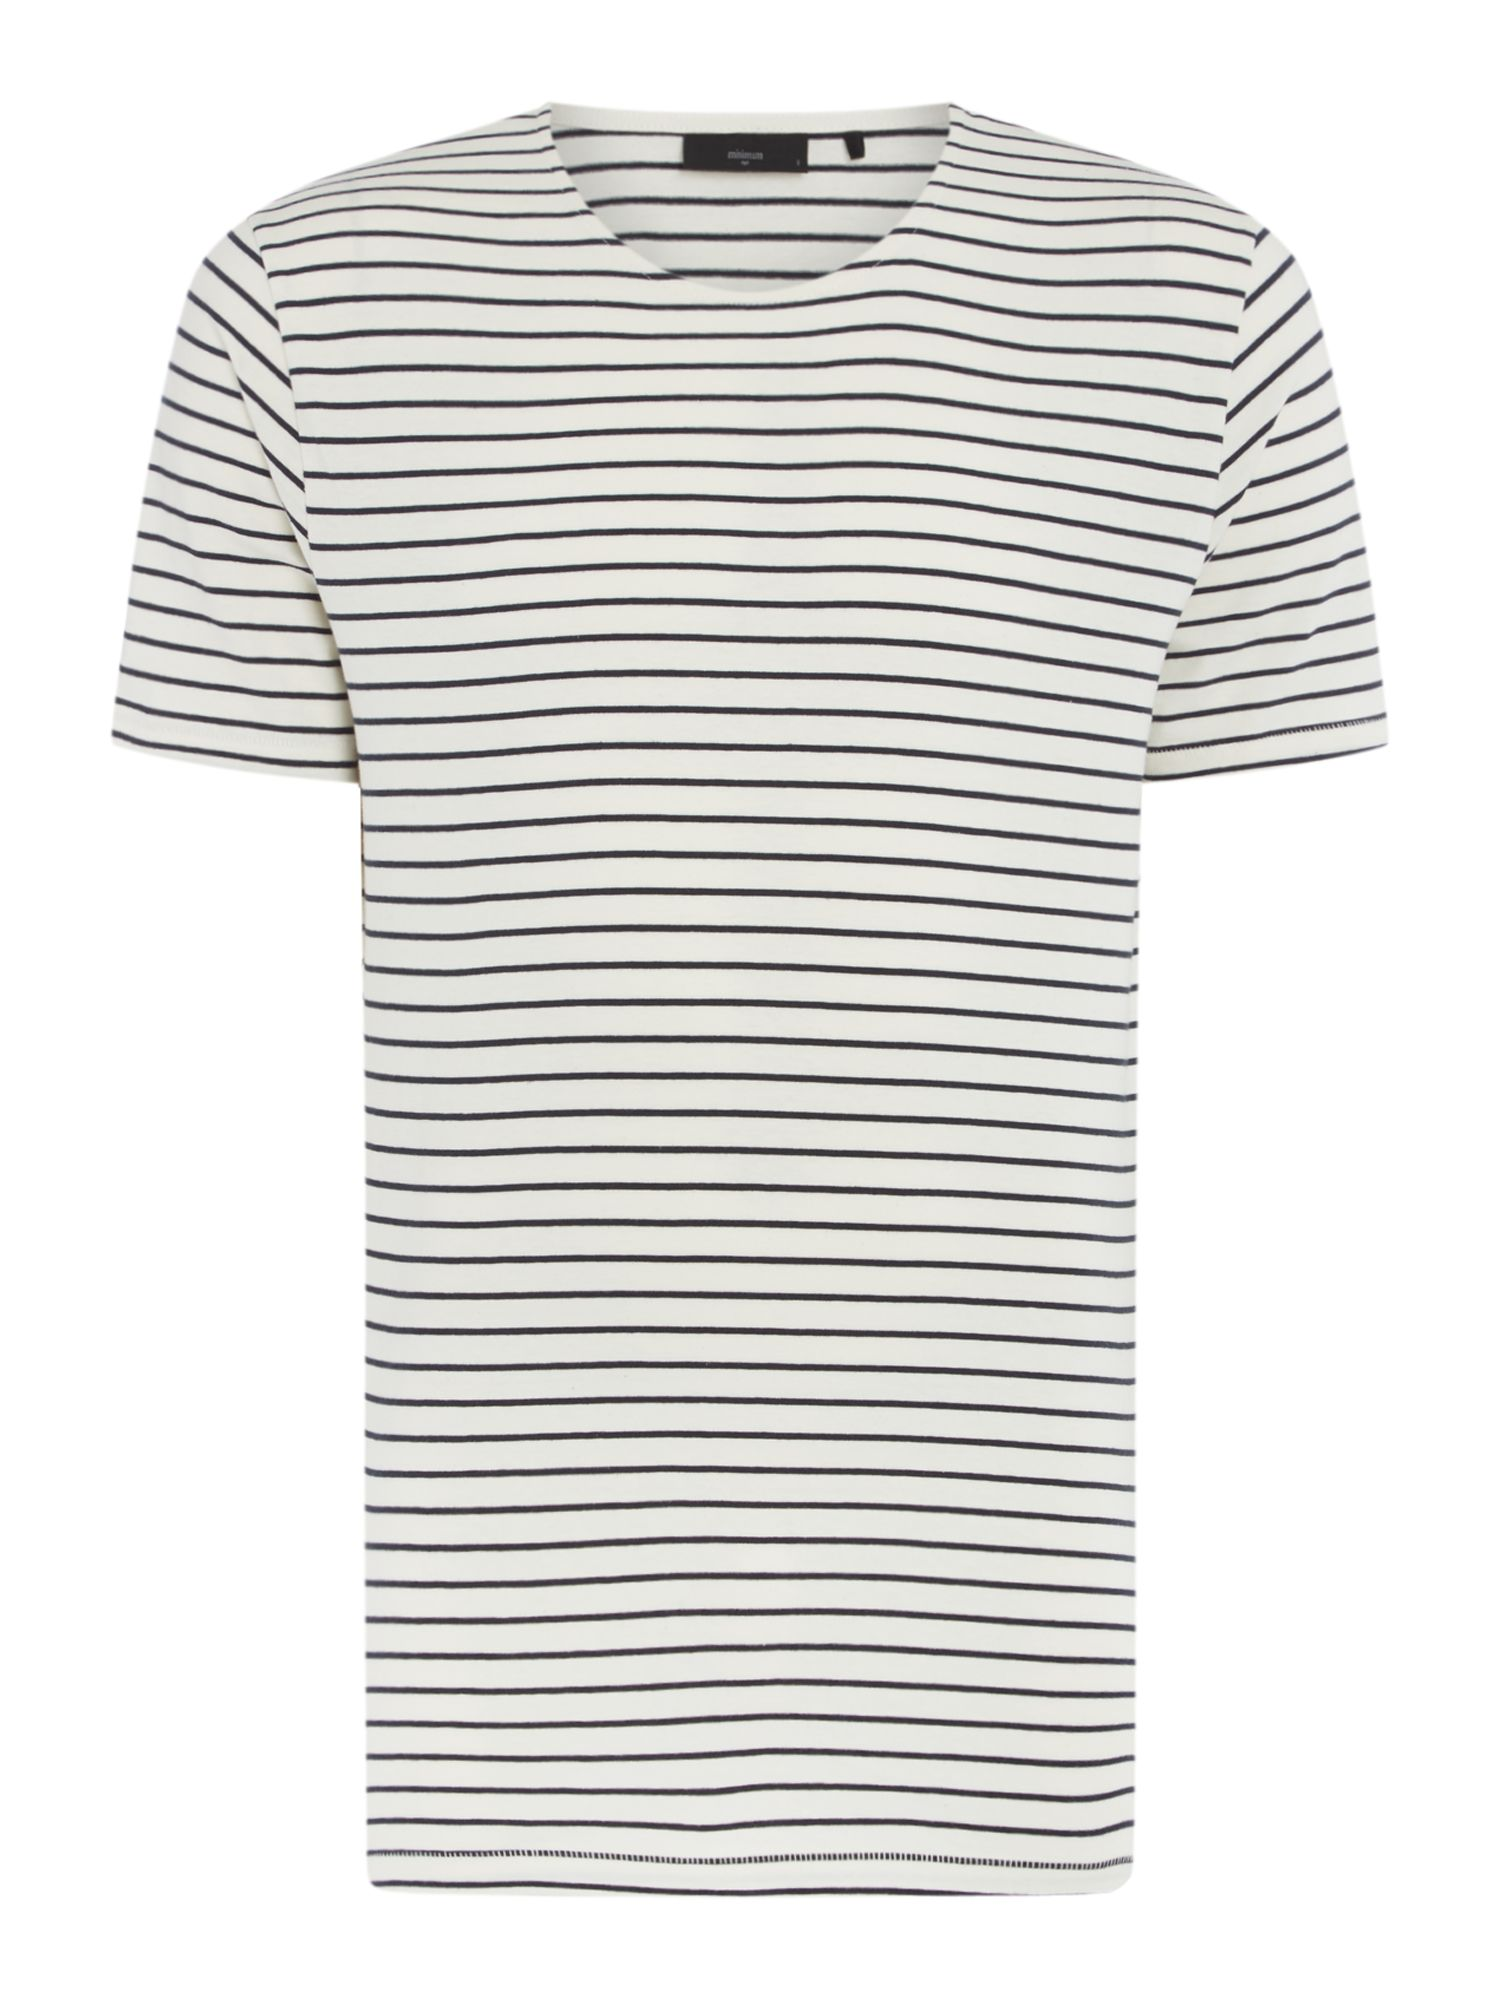 Men's Minimum Striped Crew Neck T-Shirt, White